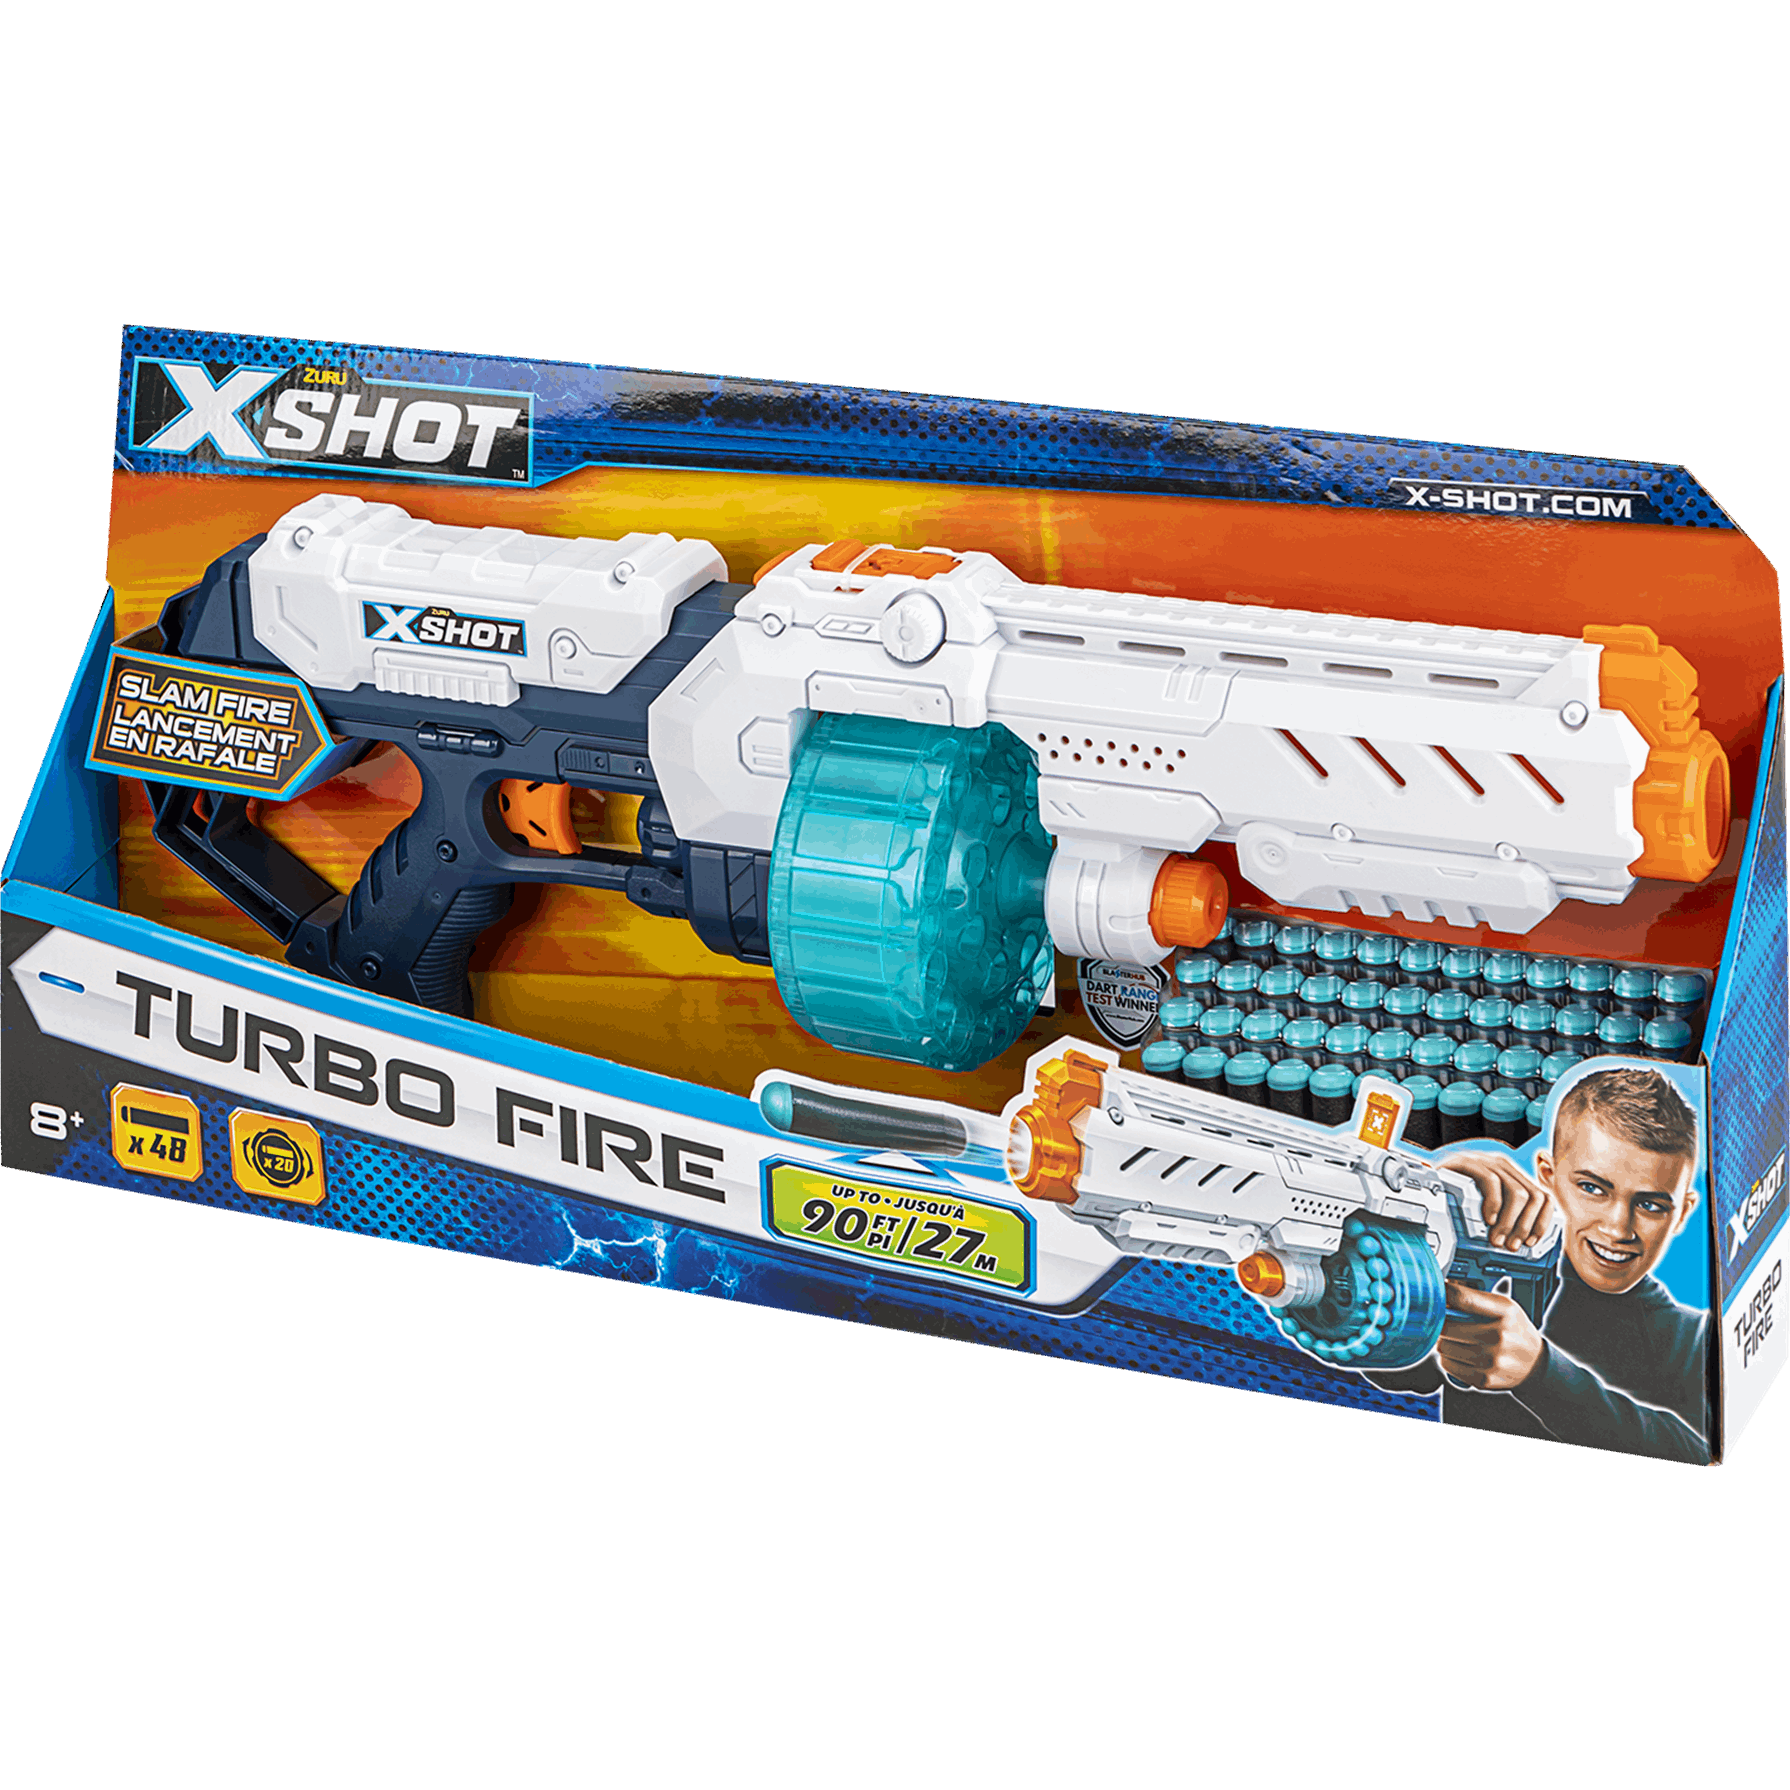 XShot Excel Turbo Fire